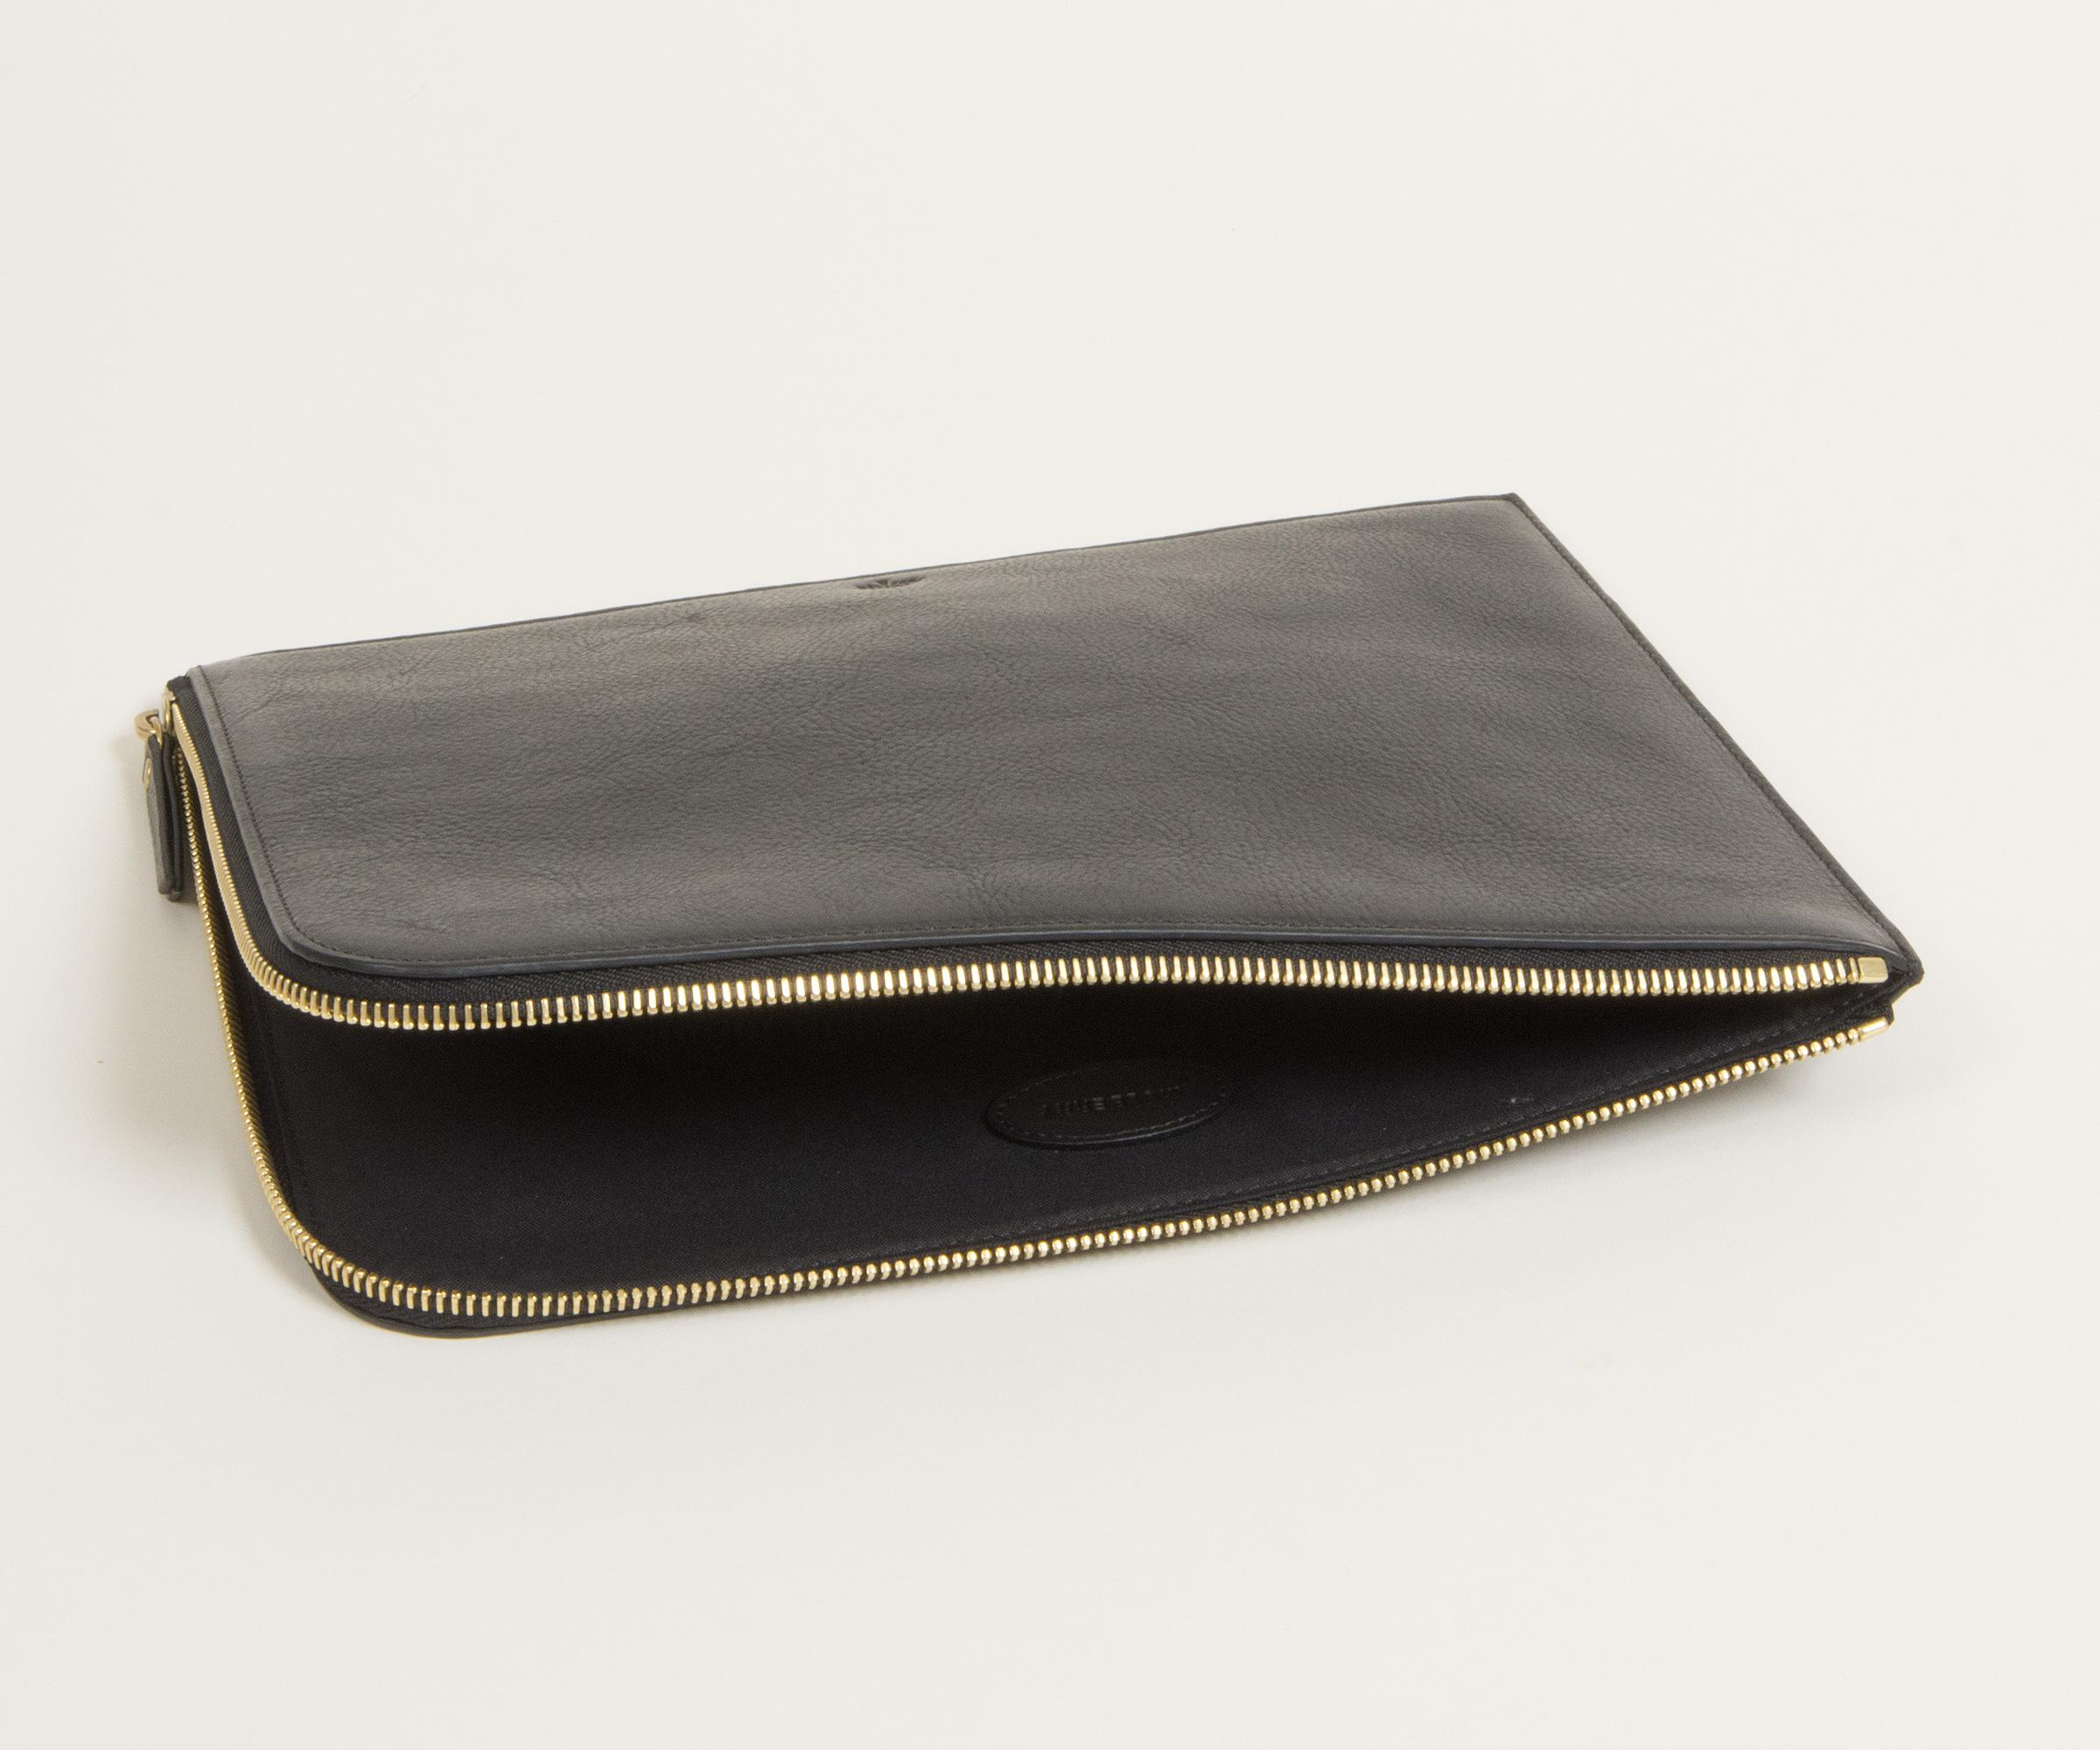 online for sale skate shoes best choice Mulberry Tech Pouch Black Natural Leather for Men - Lyst